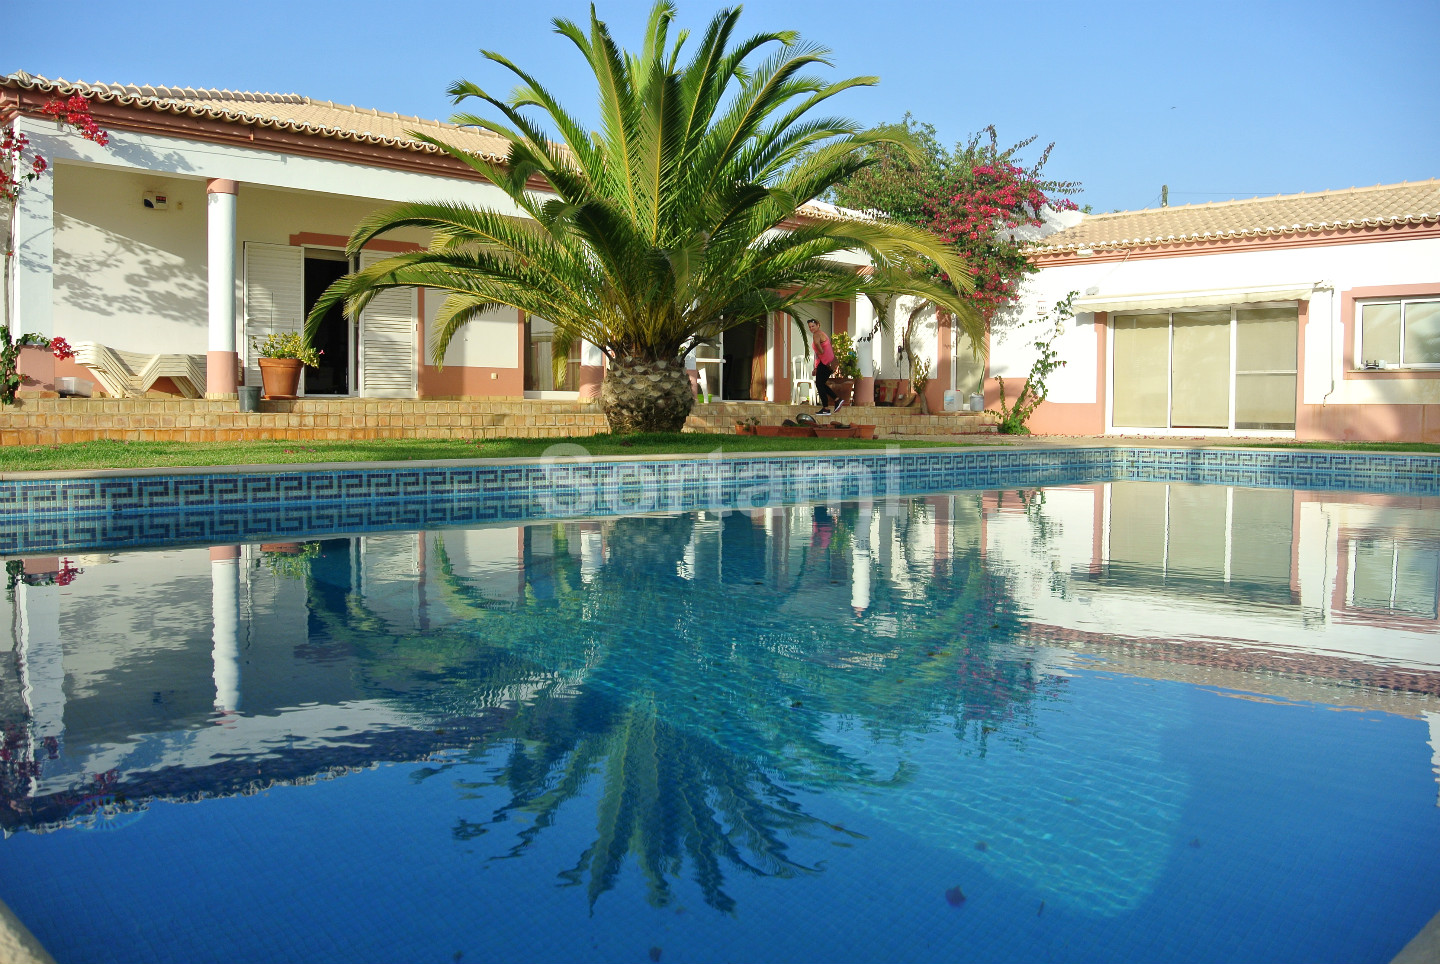 Detached house T6, Algarve, Albufeira